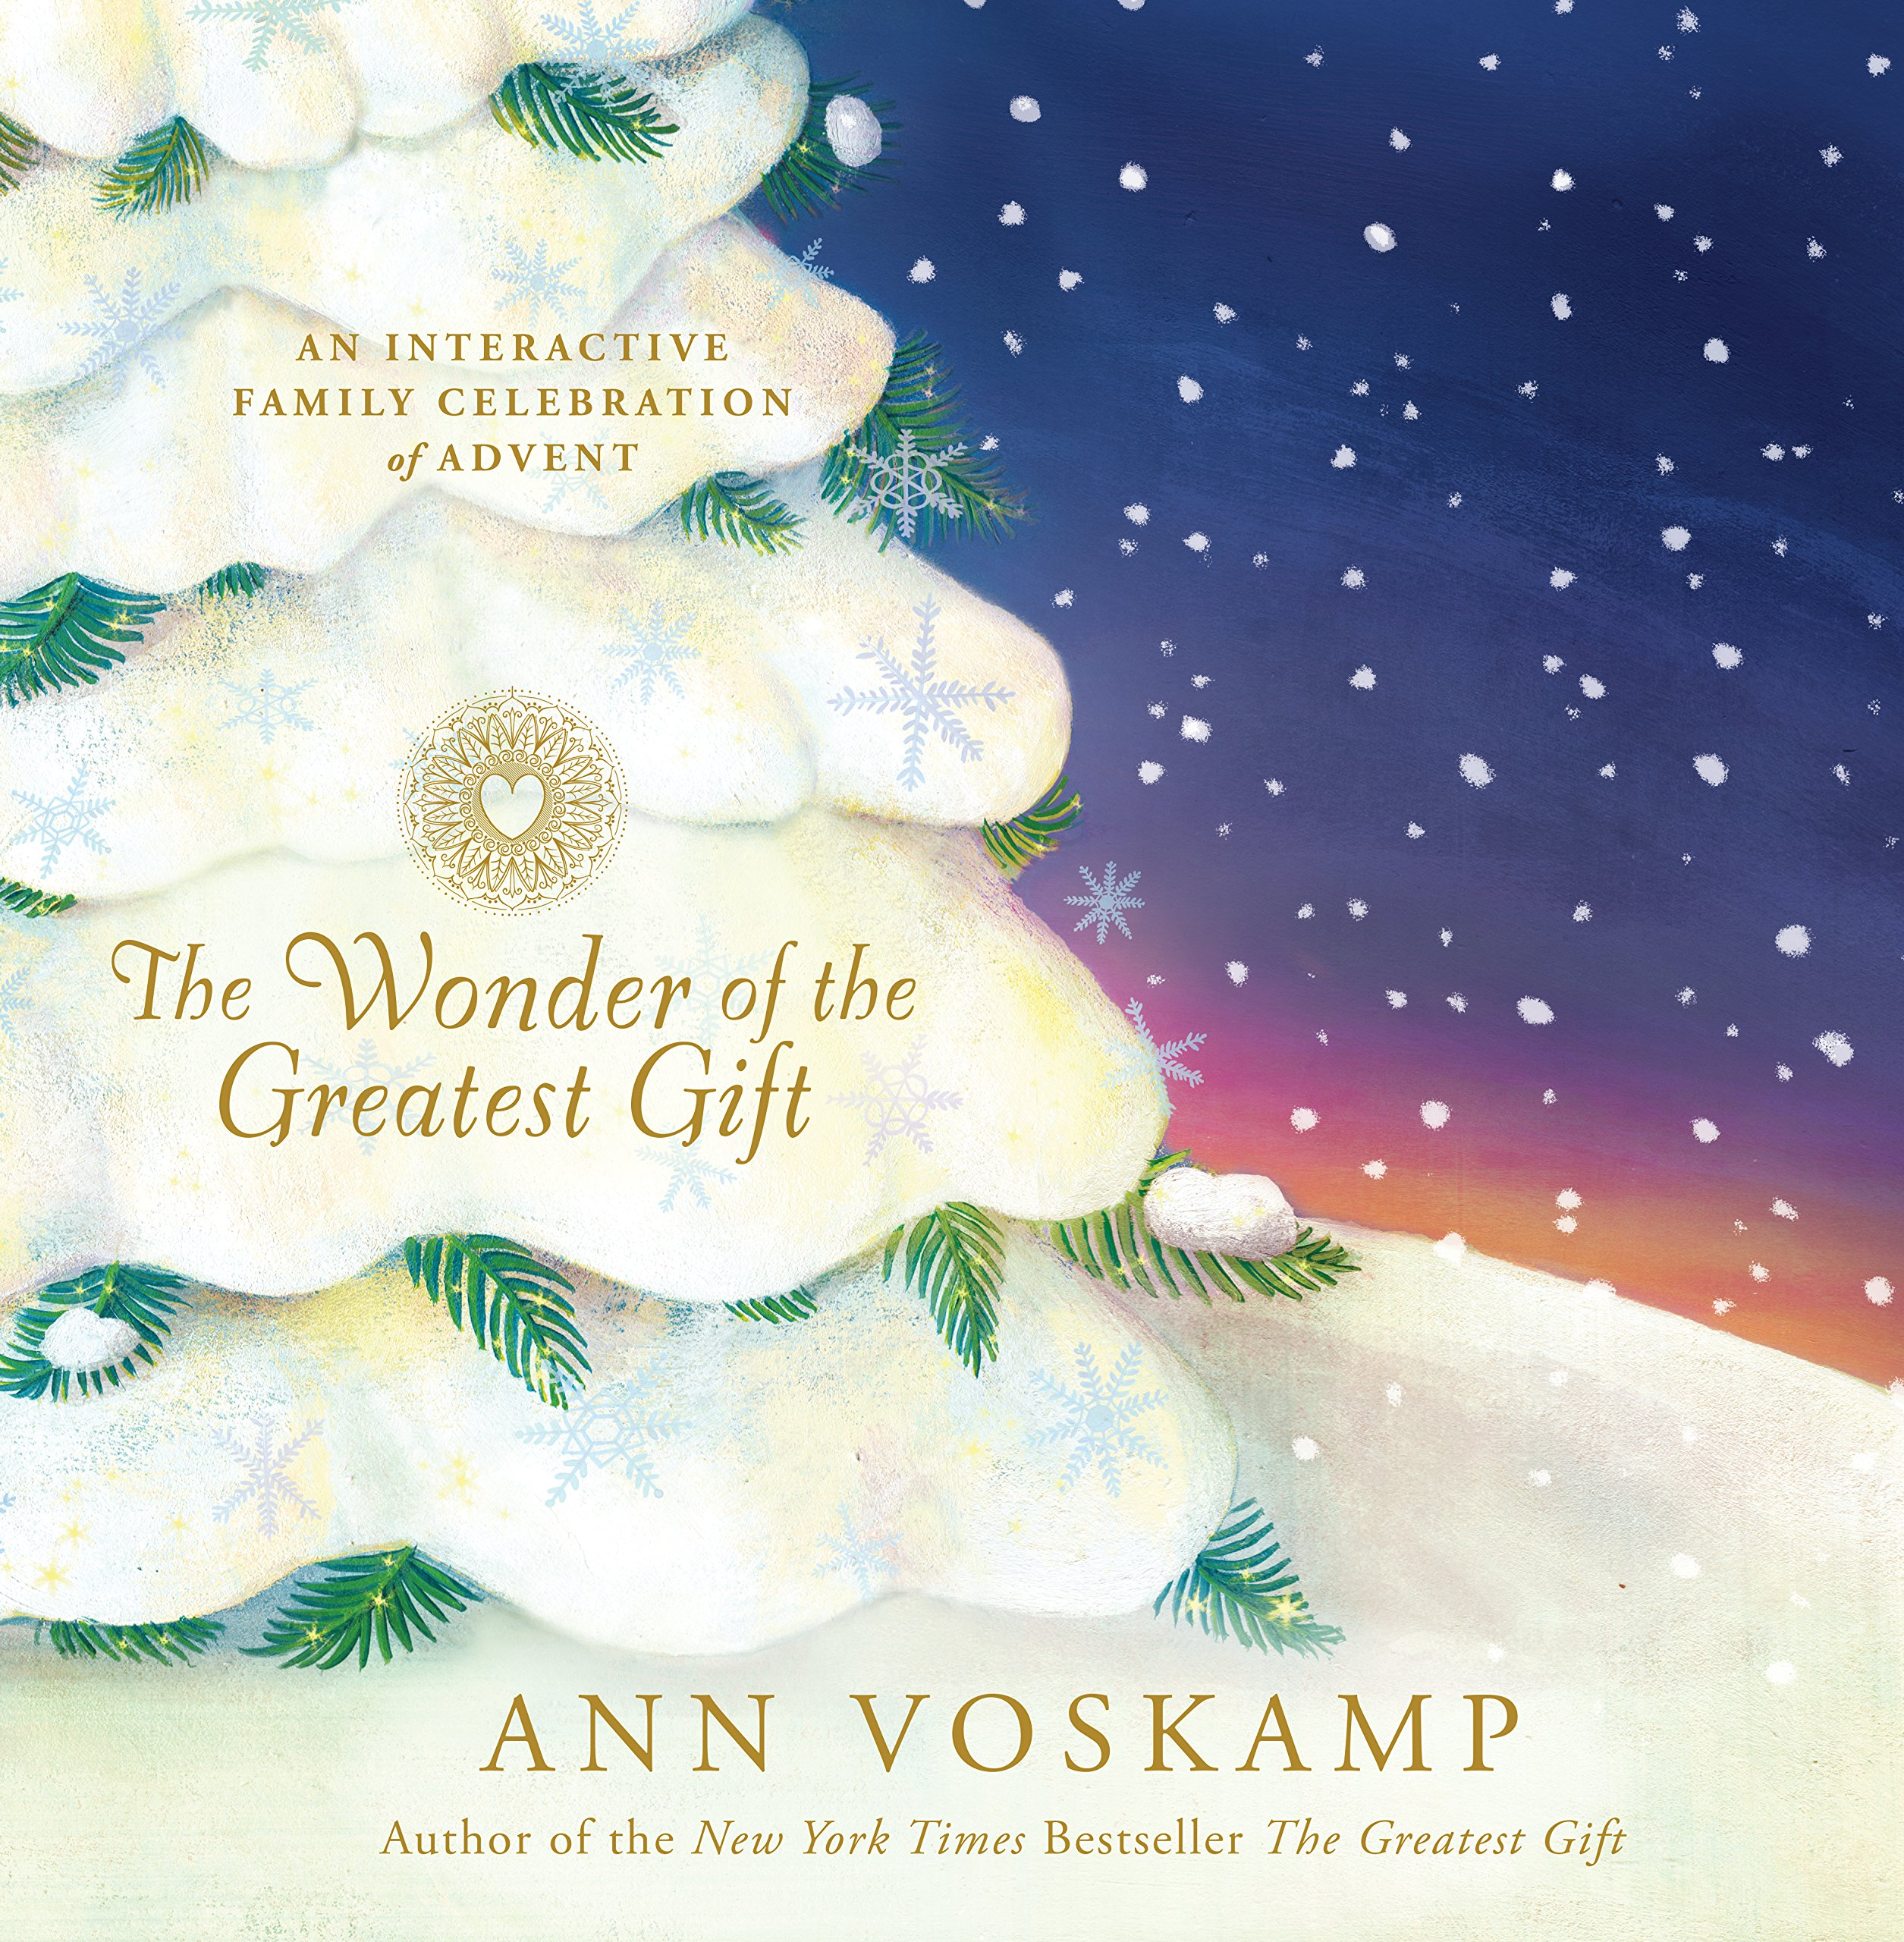 The wonder of the greatest gift an interactive family celebration the wonder of the greatest gift an interactive family celebration of advent ann voskamp 9781496427991 amazon books kristyandbryce Image collections